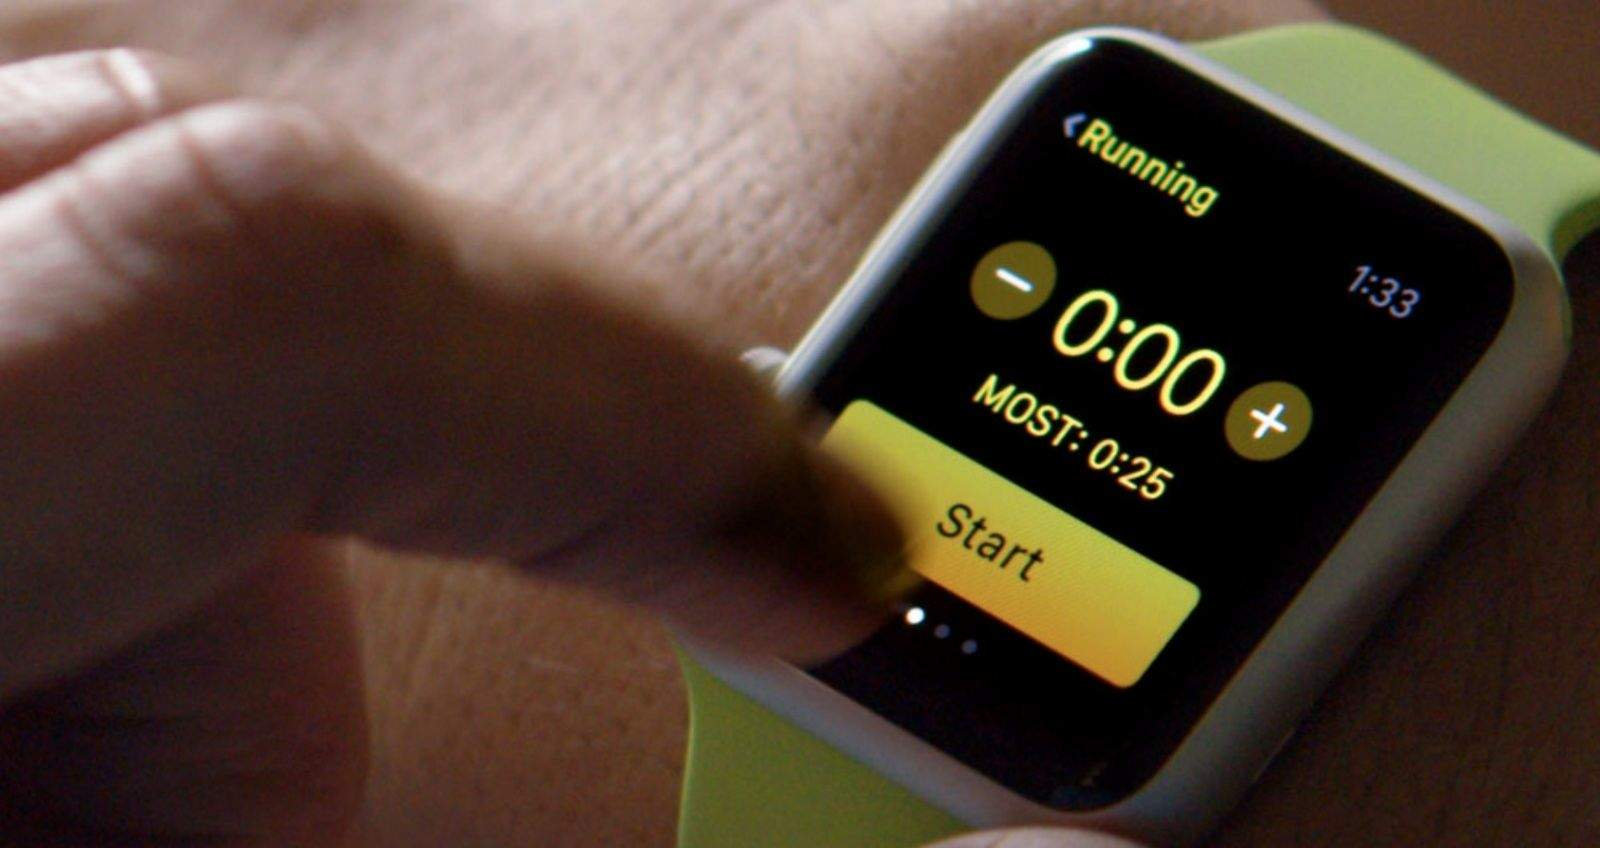 Apple watch goal: Apple watch not counting steps? Apple watch not counting steps Correctly?